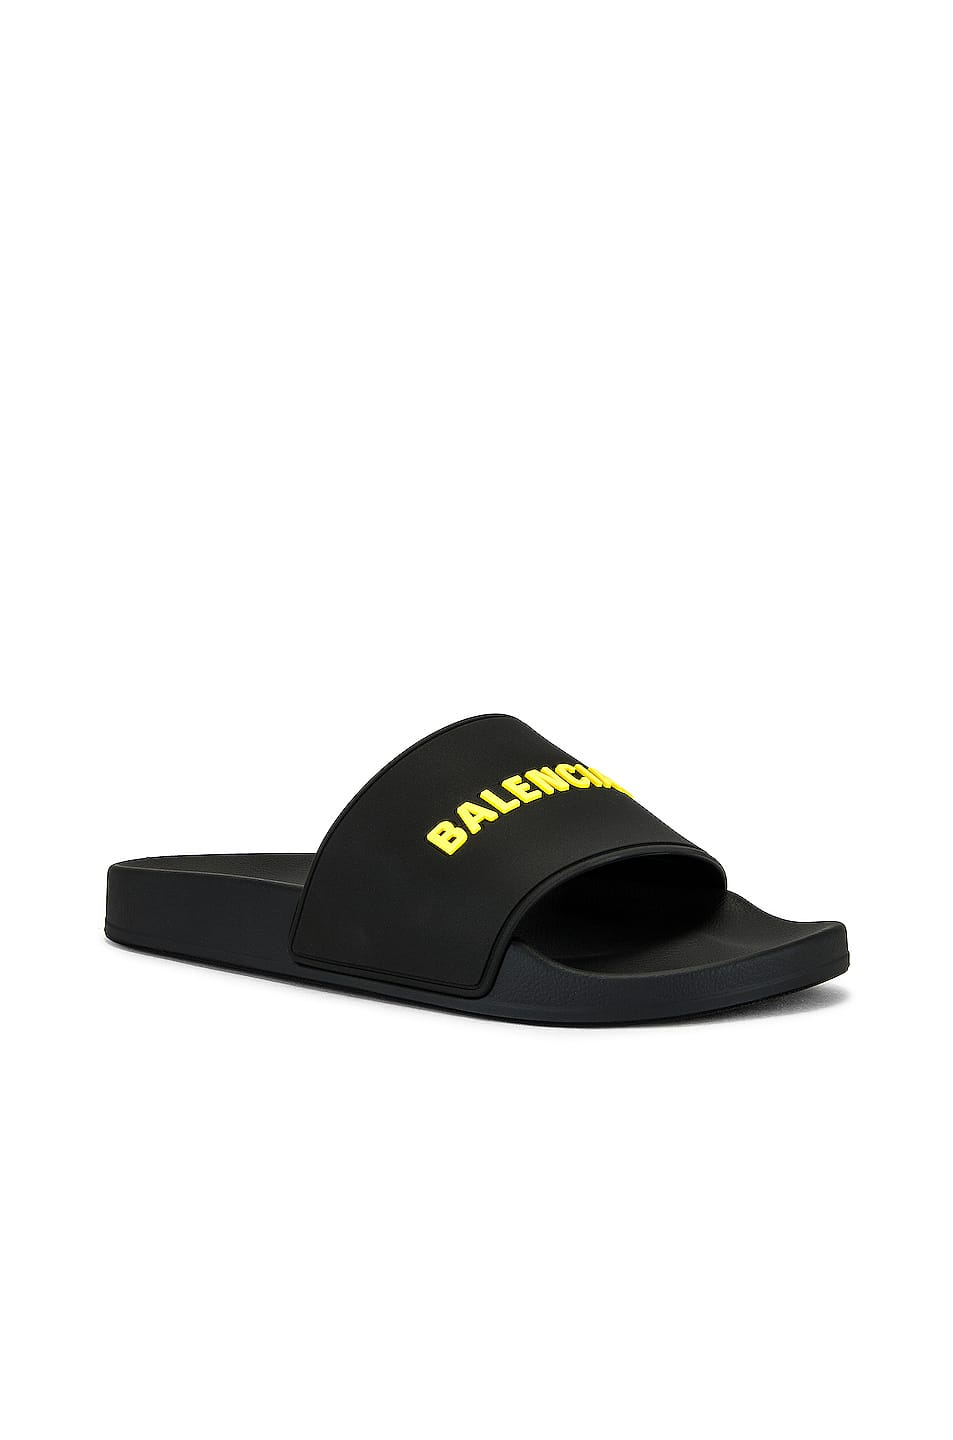 Balenciaga Pool Slide